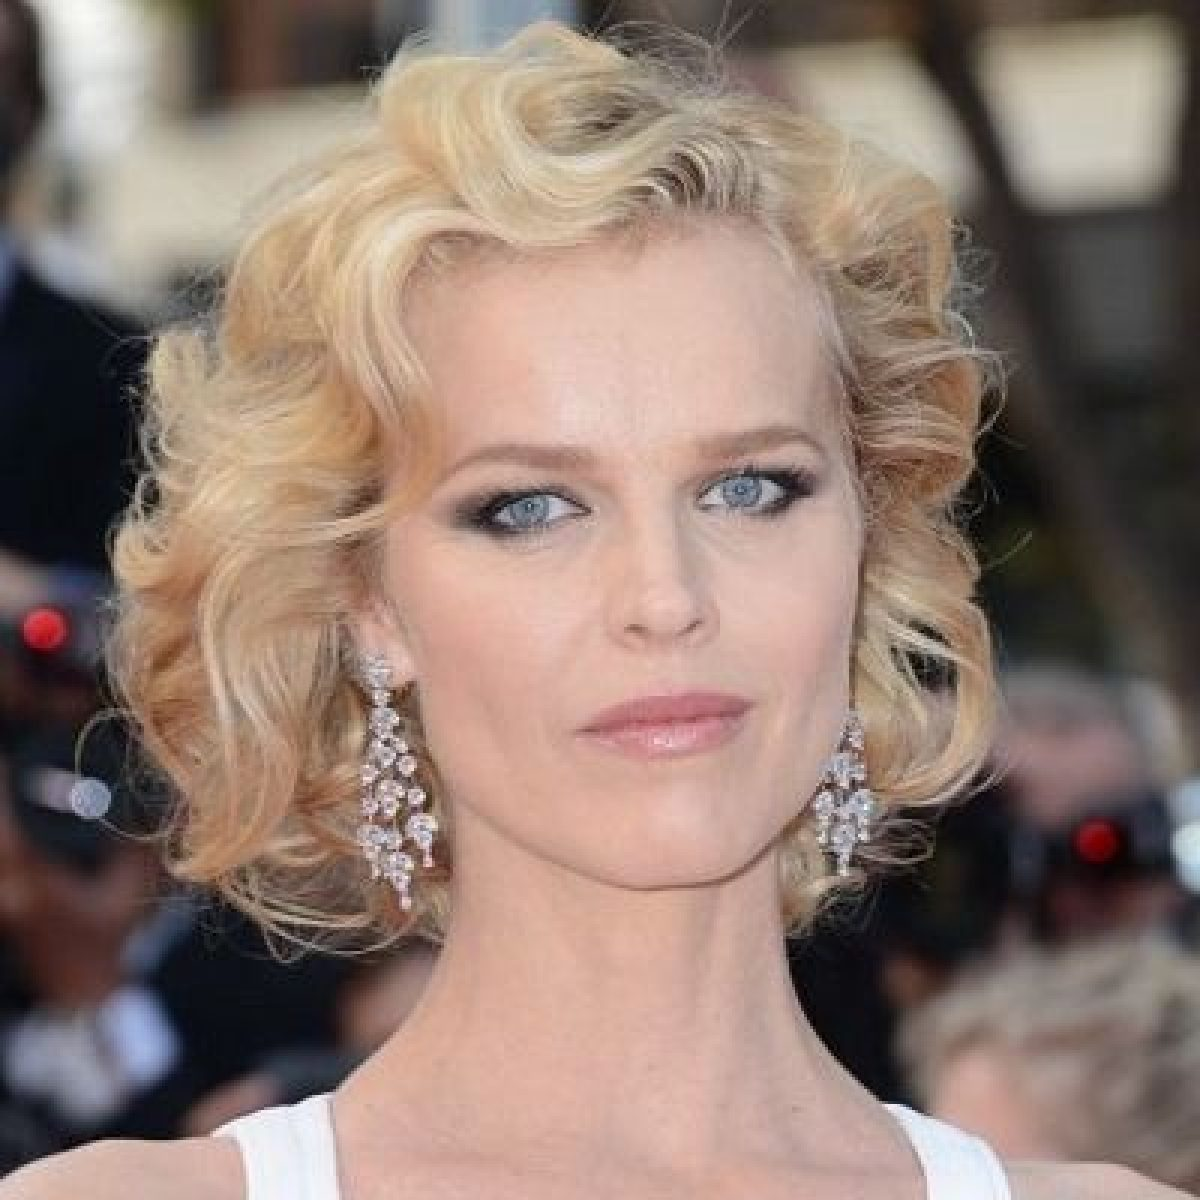 Eva Herzigova Biography Age Net Worth Height Married Nationality